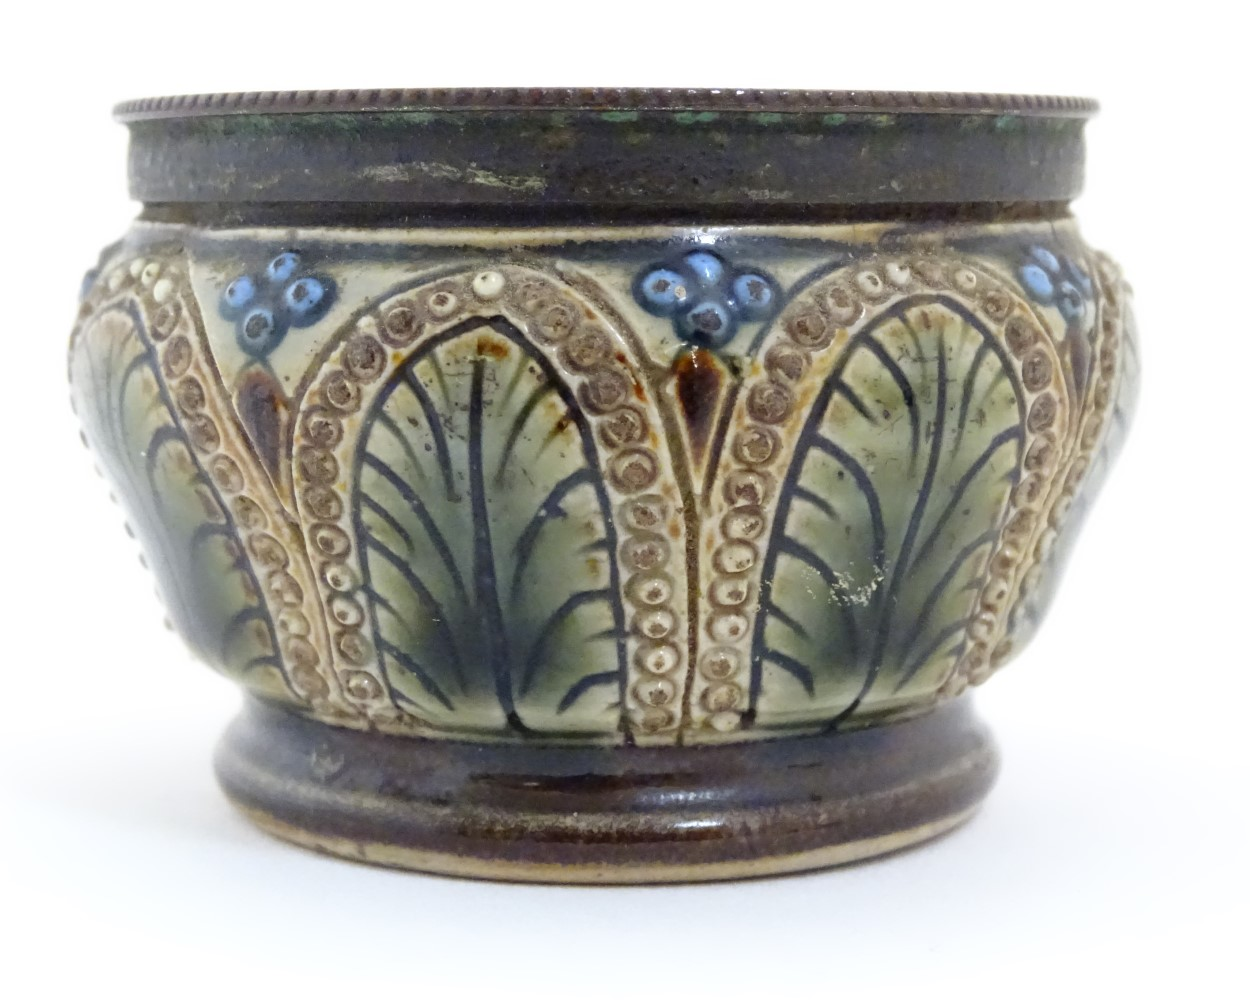 Lot 66 - A later 19th/early 20thC small stoneware pot/table salt, with metal rim. In the manner of Doulton.